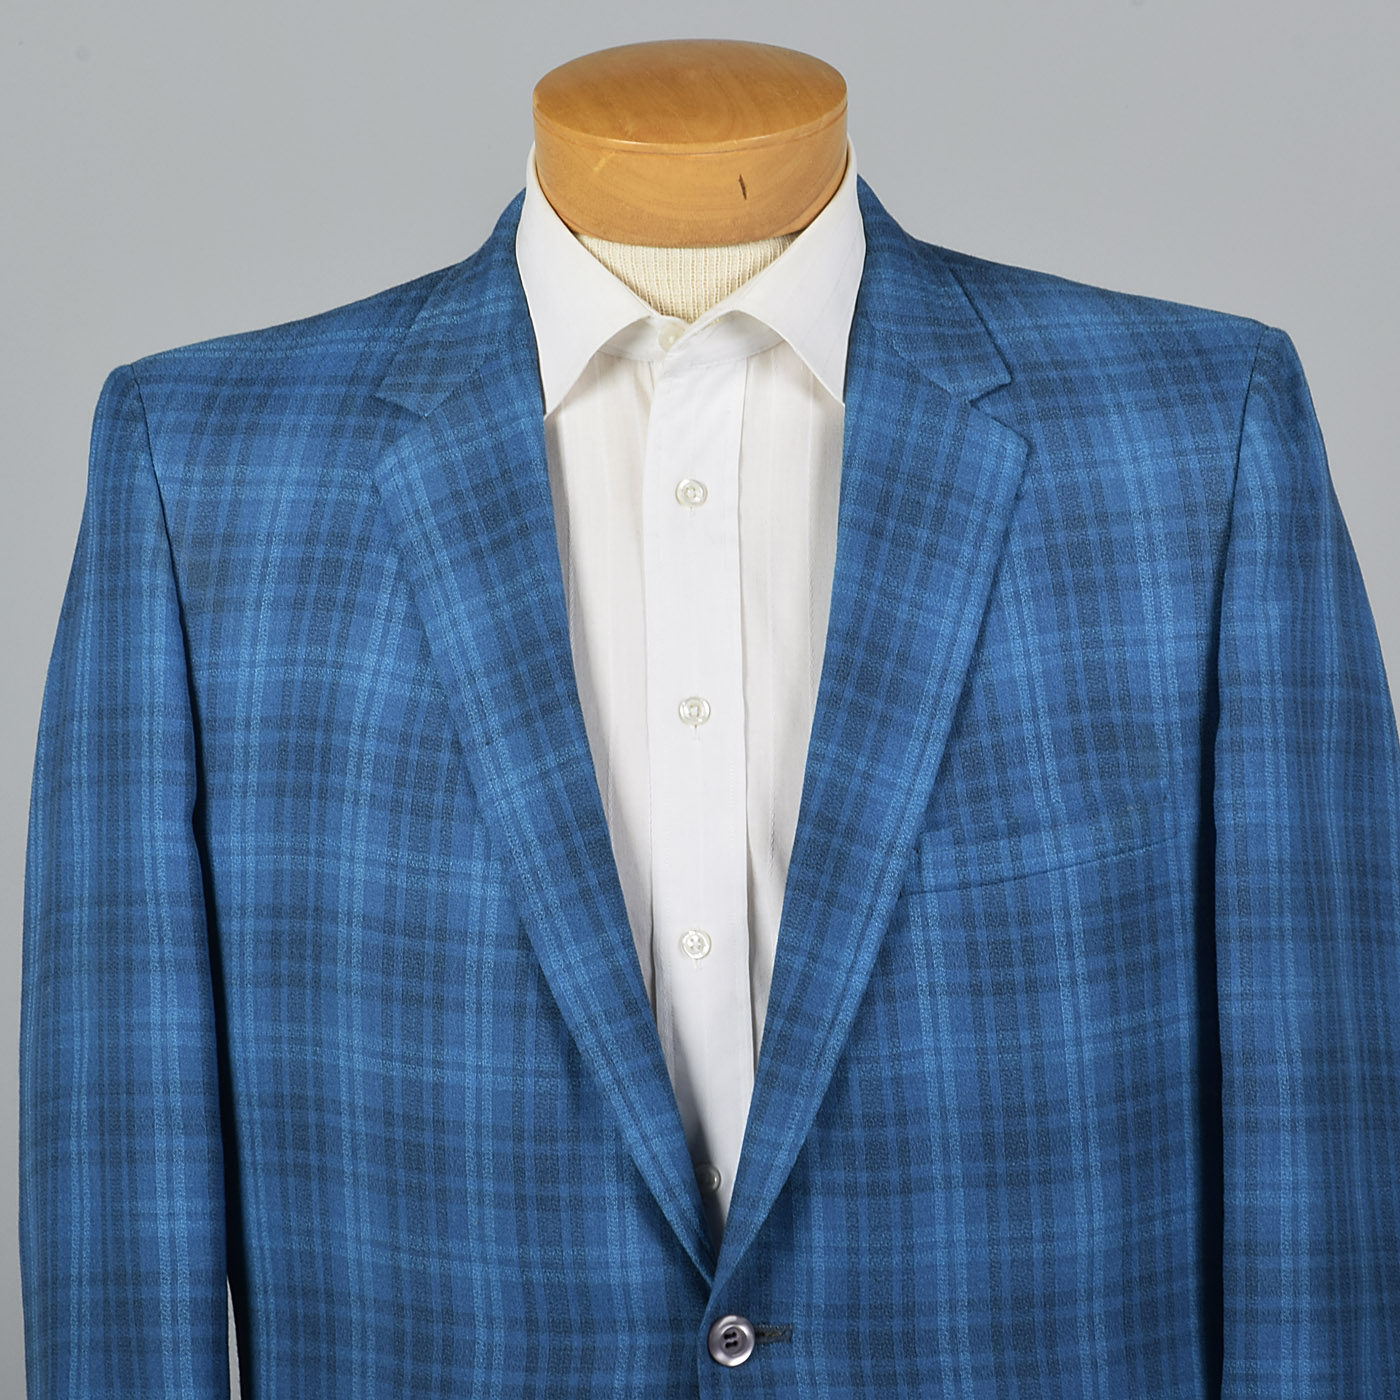 1950s Blue Plaid Jacket with Slim Lapel